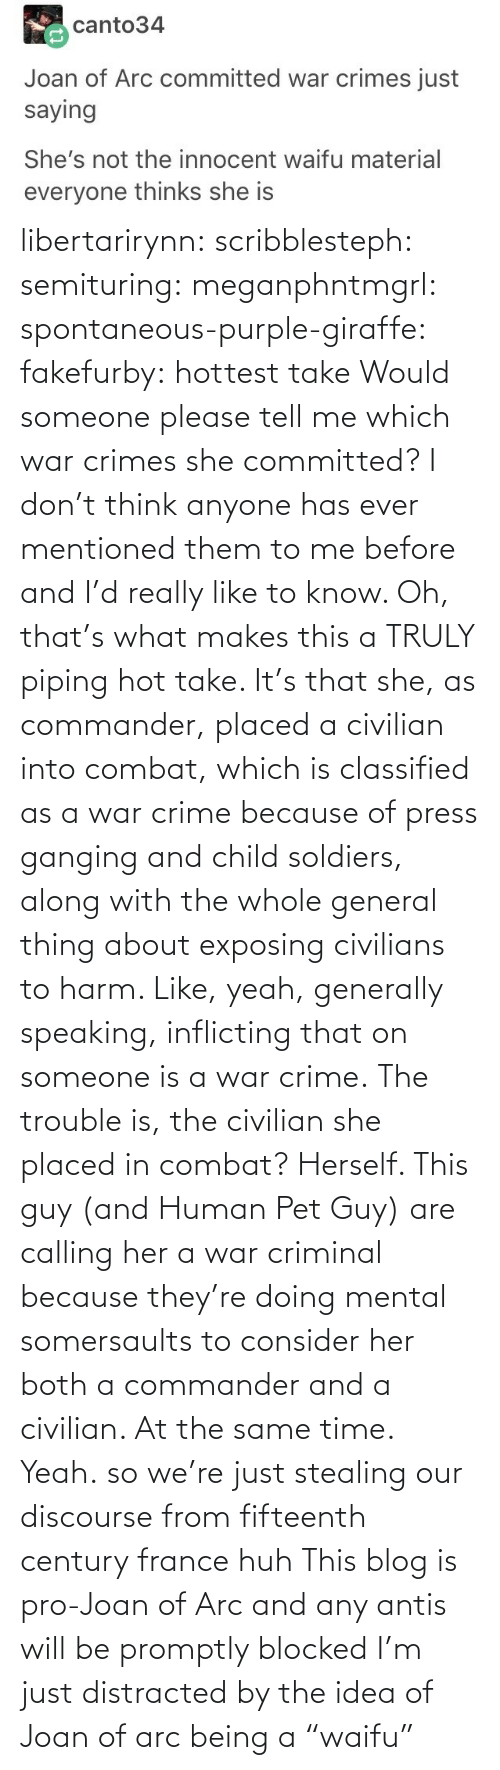 "really: libertarirynn: scribblesteph:  semituring:  meganphntmgrl:  spontaneous-purple-giraffe:   fakefurby: hottest take  Would someone please tell me which war crimes she committed? I don't think anyone has ever mentioned them to me before and I'd really like to know.    Oh, that's what makes this a TRULY piping hot take. It's that she, as commander, placed a civilian into combat, which is classified as a war crime because of press ganging and child soldiers, along with the whole general thing about exposing civilians to harm. Like, yeah, generally speaking, inflicting that on someone is a war crime. The trouble is, the civilian she placed in combat? Herself.  This guy (and Human Pet Guy) are calling her a war criminal because they're doing mental somersaults to consider her both a commander and a civilian. At the same time.  Yeah.  so we're just stealing our discourse from fifteenth century france huh   This blog is pro-Joan of Arc and any antis will be promptly blocked   I'm just distracted by the idea of Joan of arc being a ""waifu"""